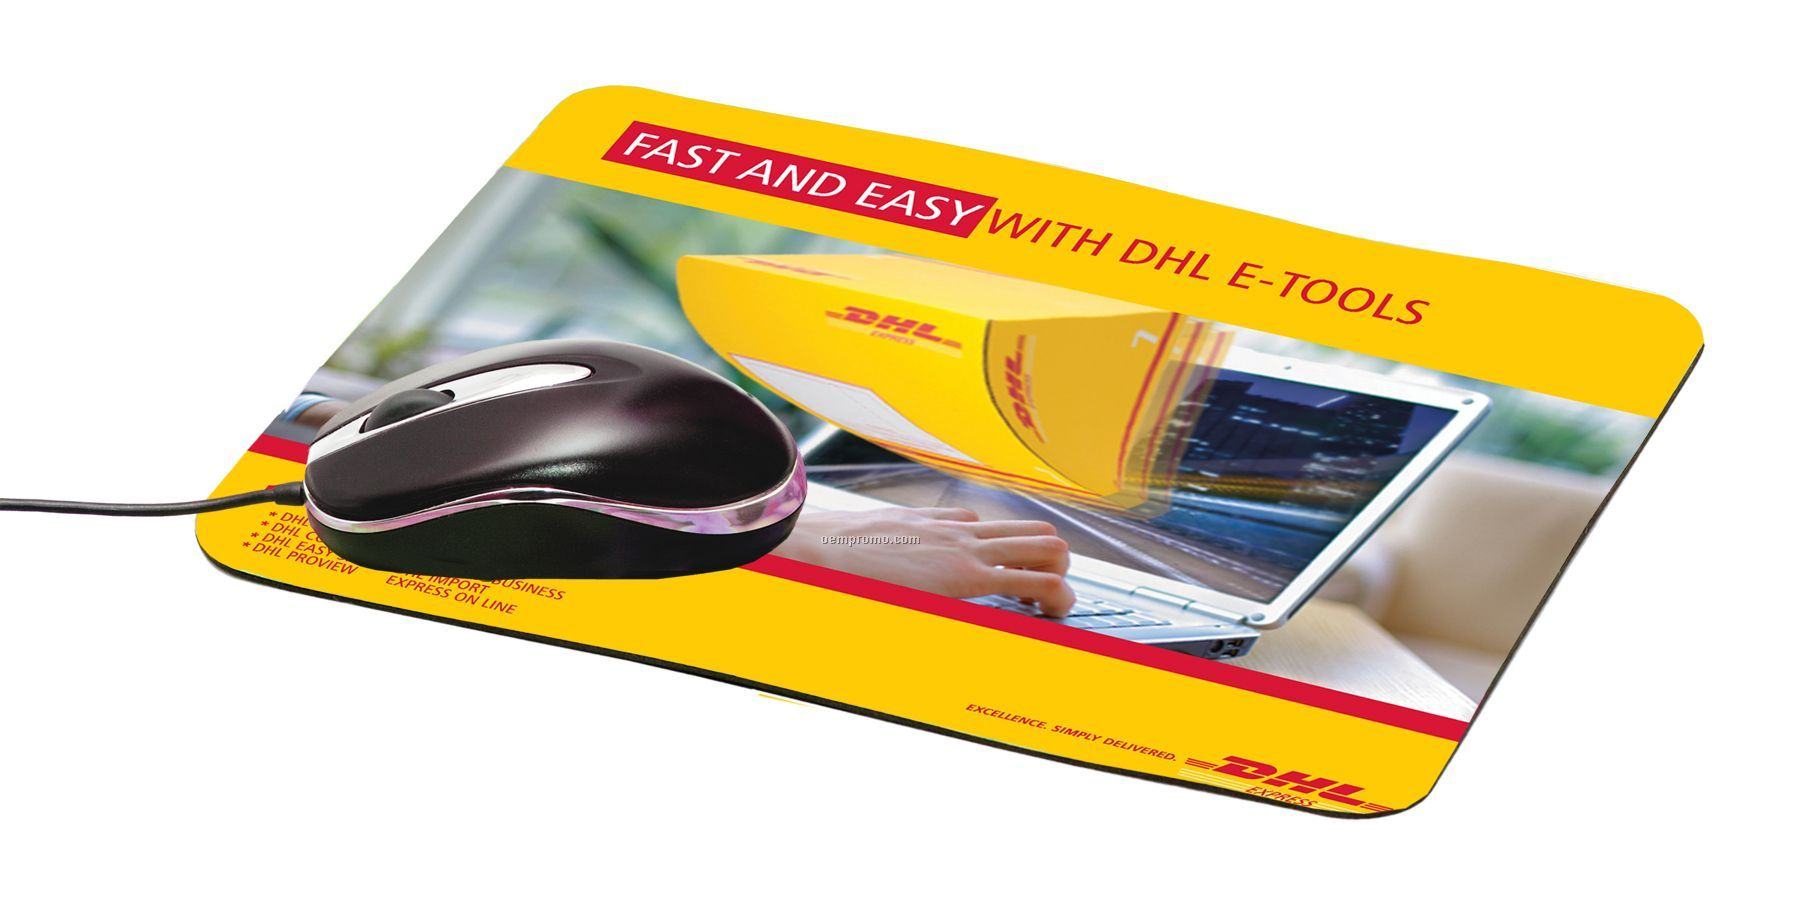 Mouse Pad supplier, Computer Mouse, promotional Mouse pads printing